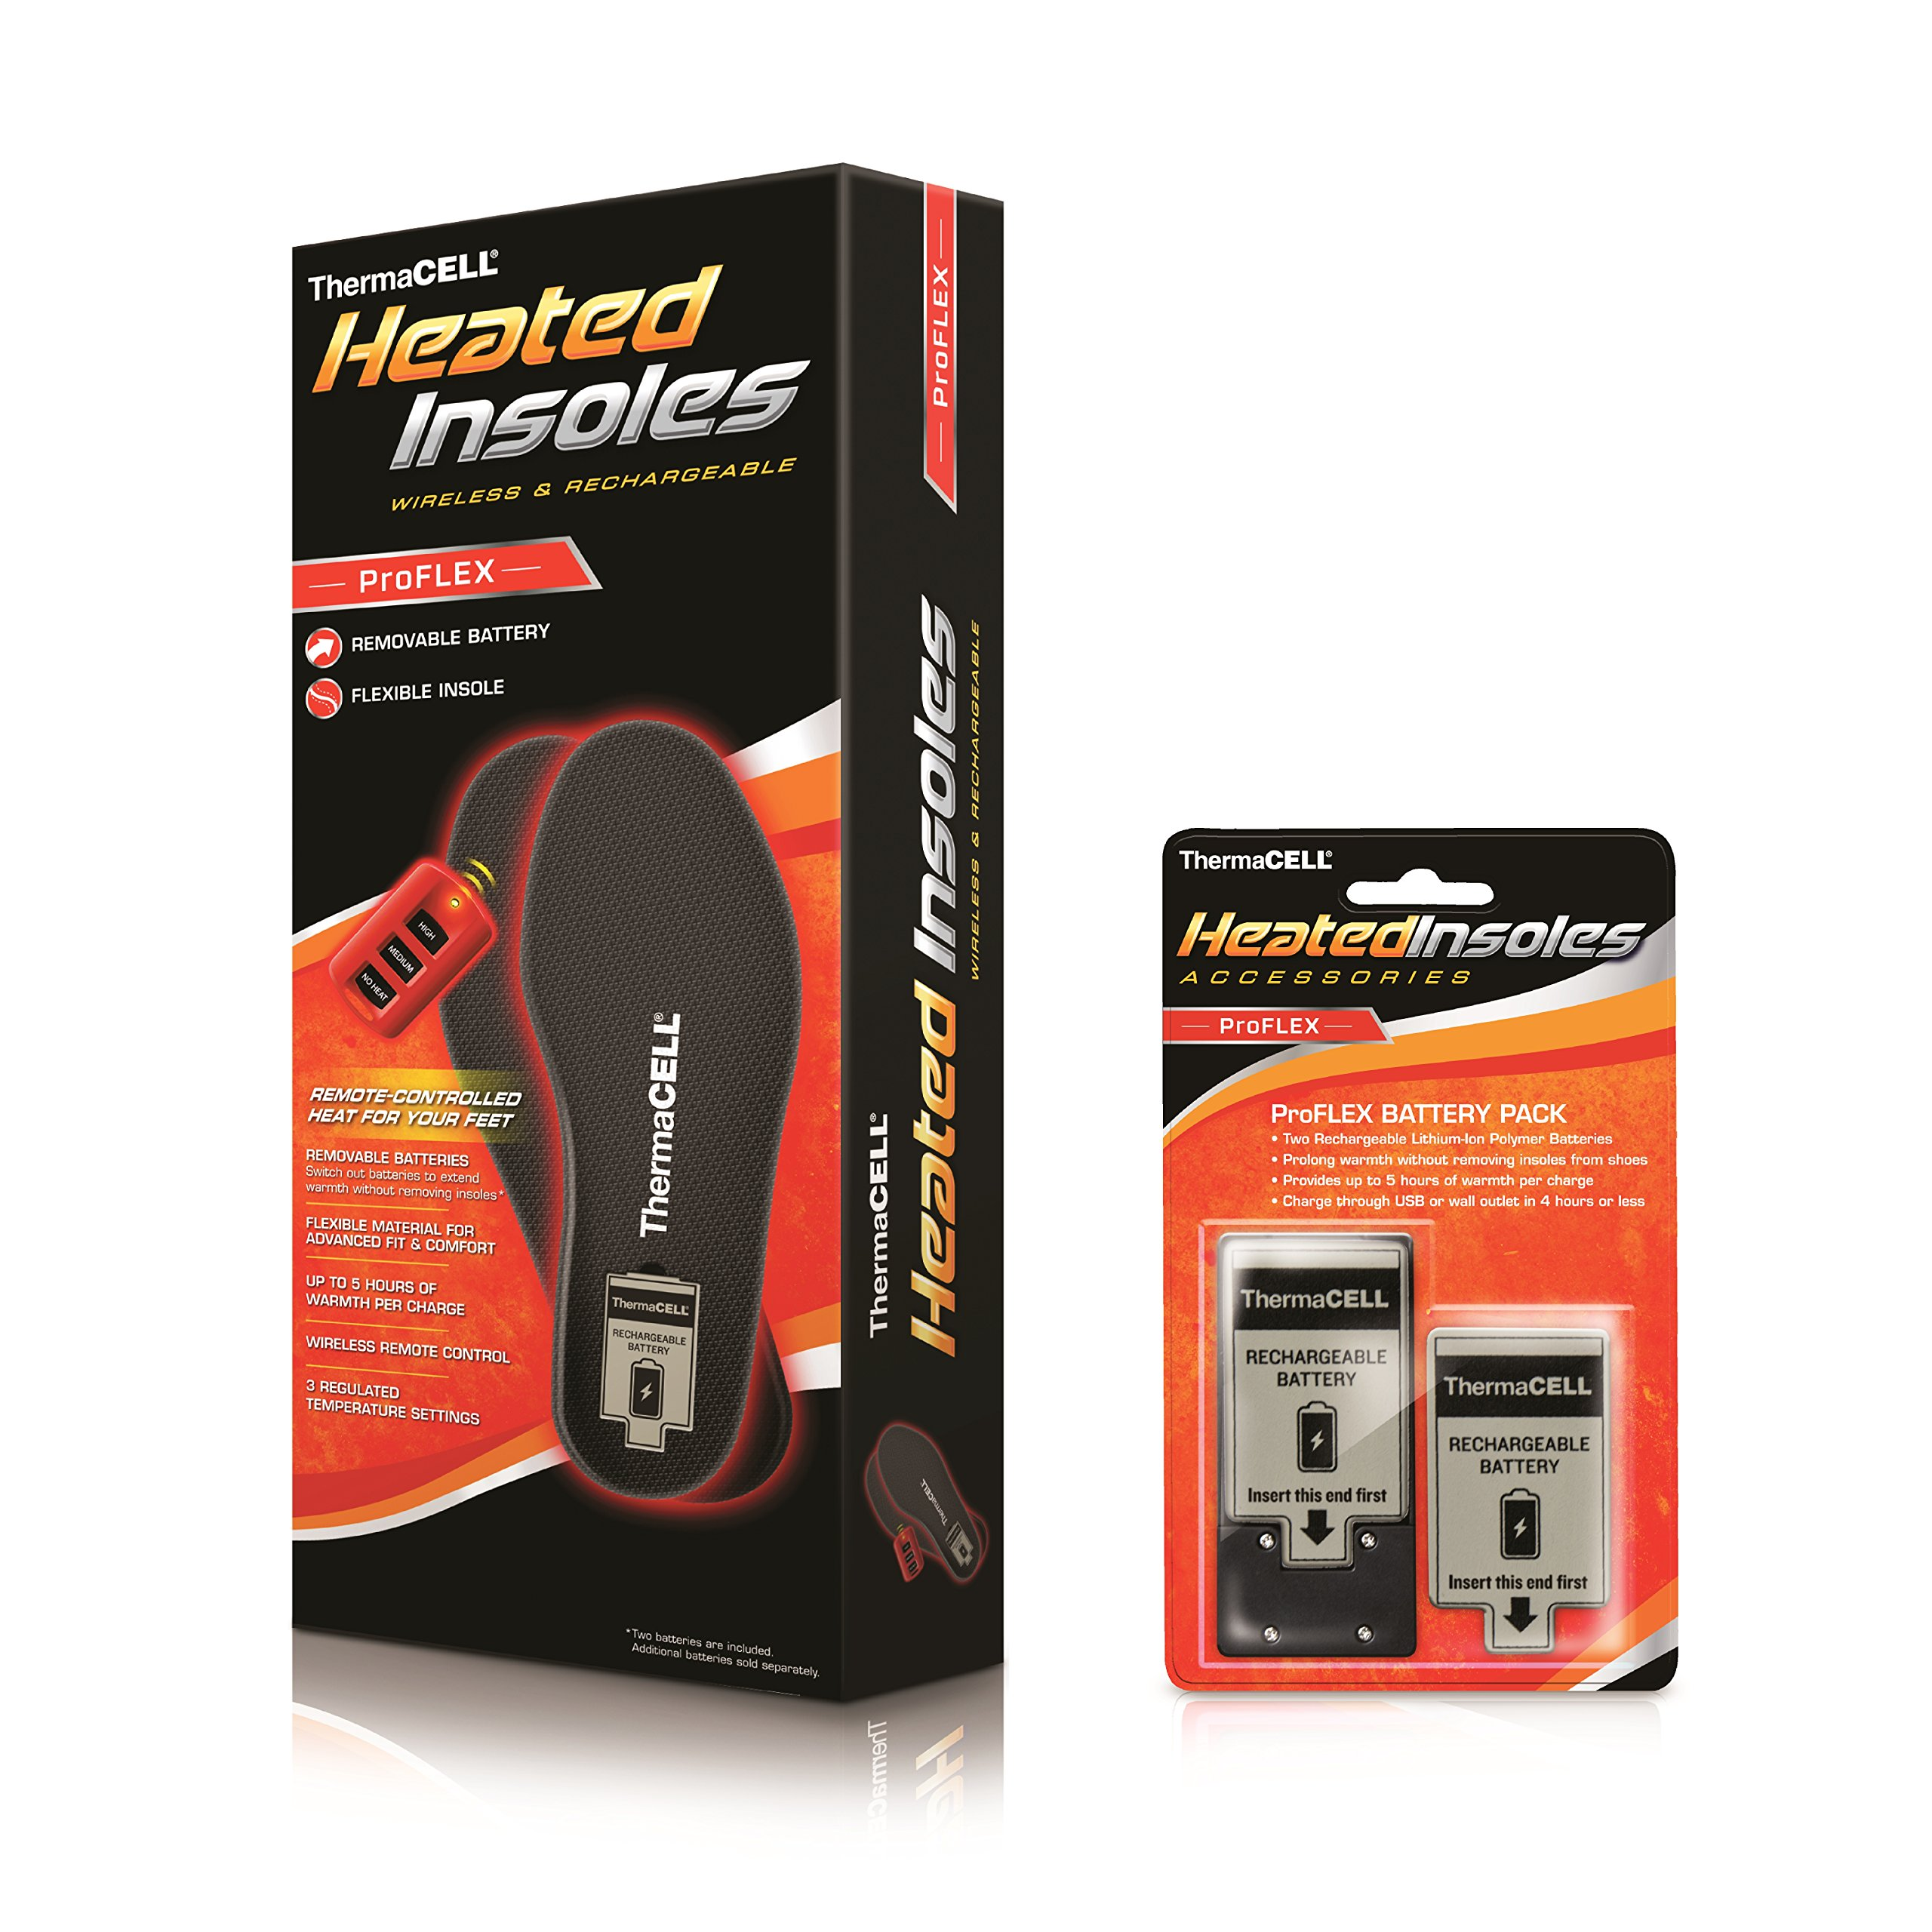 ThermaCELL Heated Insoles Proflex Small HW20-S,X-Large by Thermacell (Image #2)